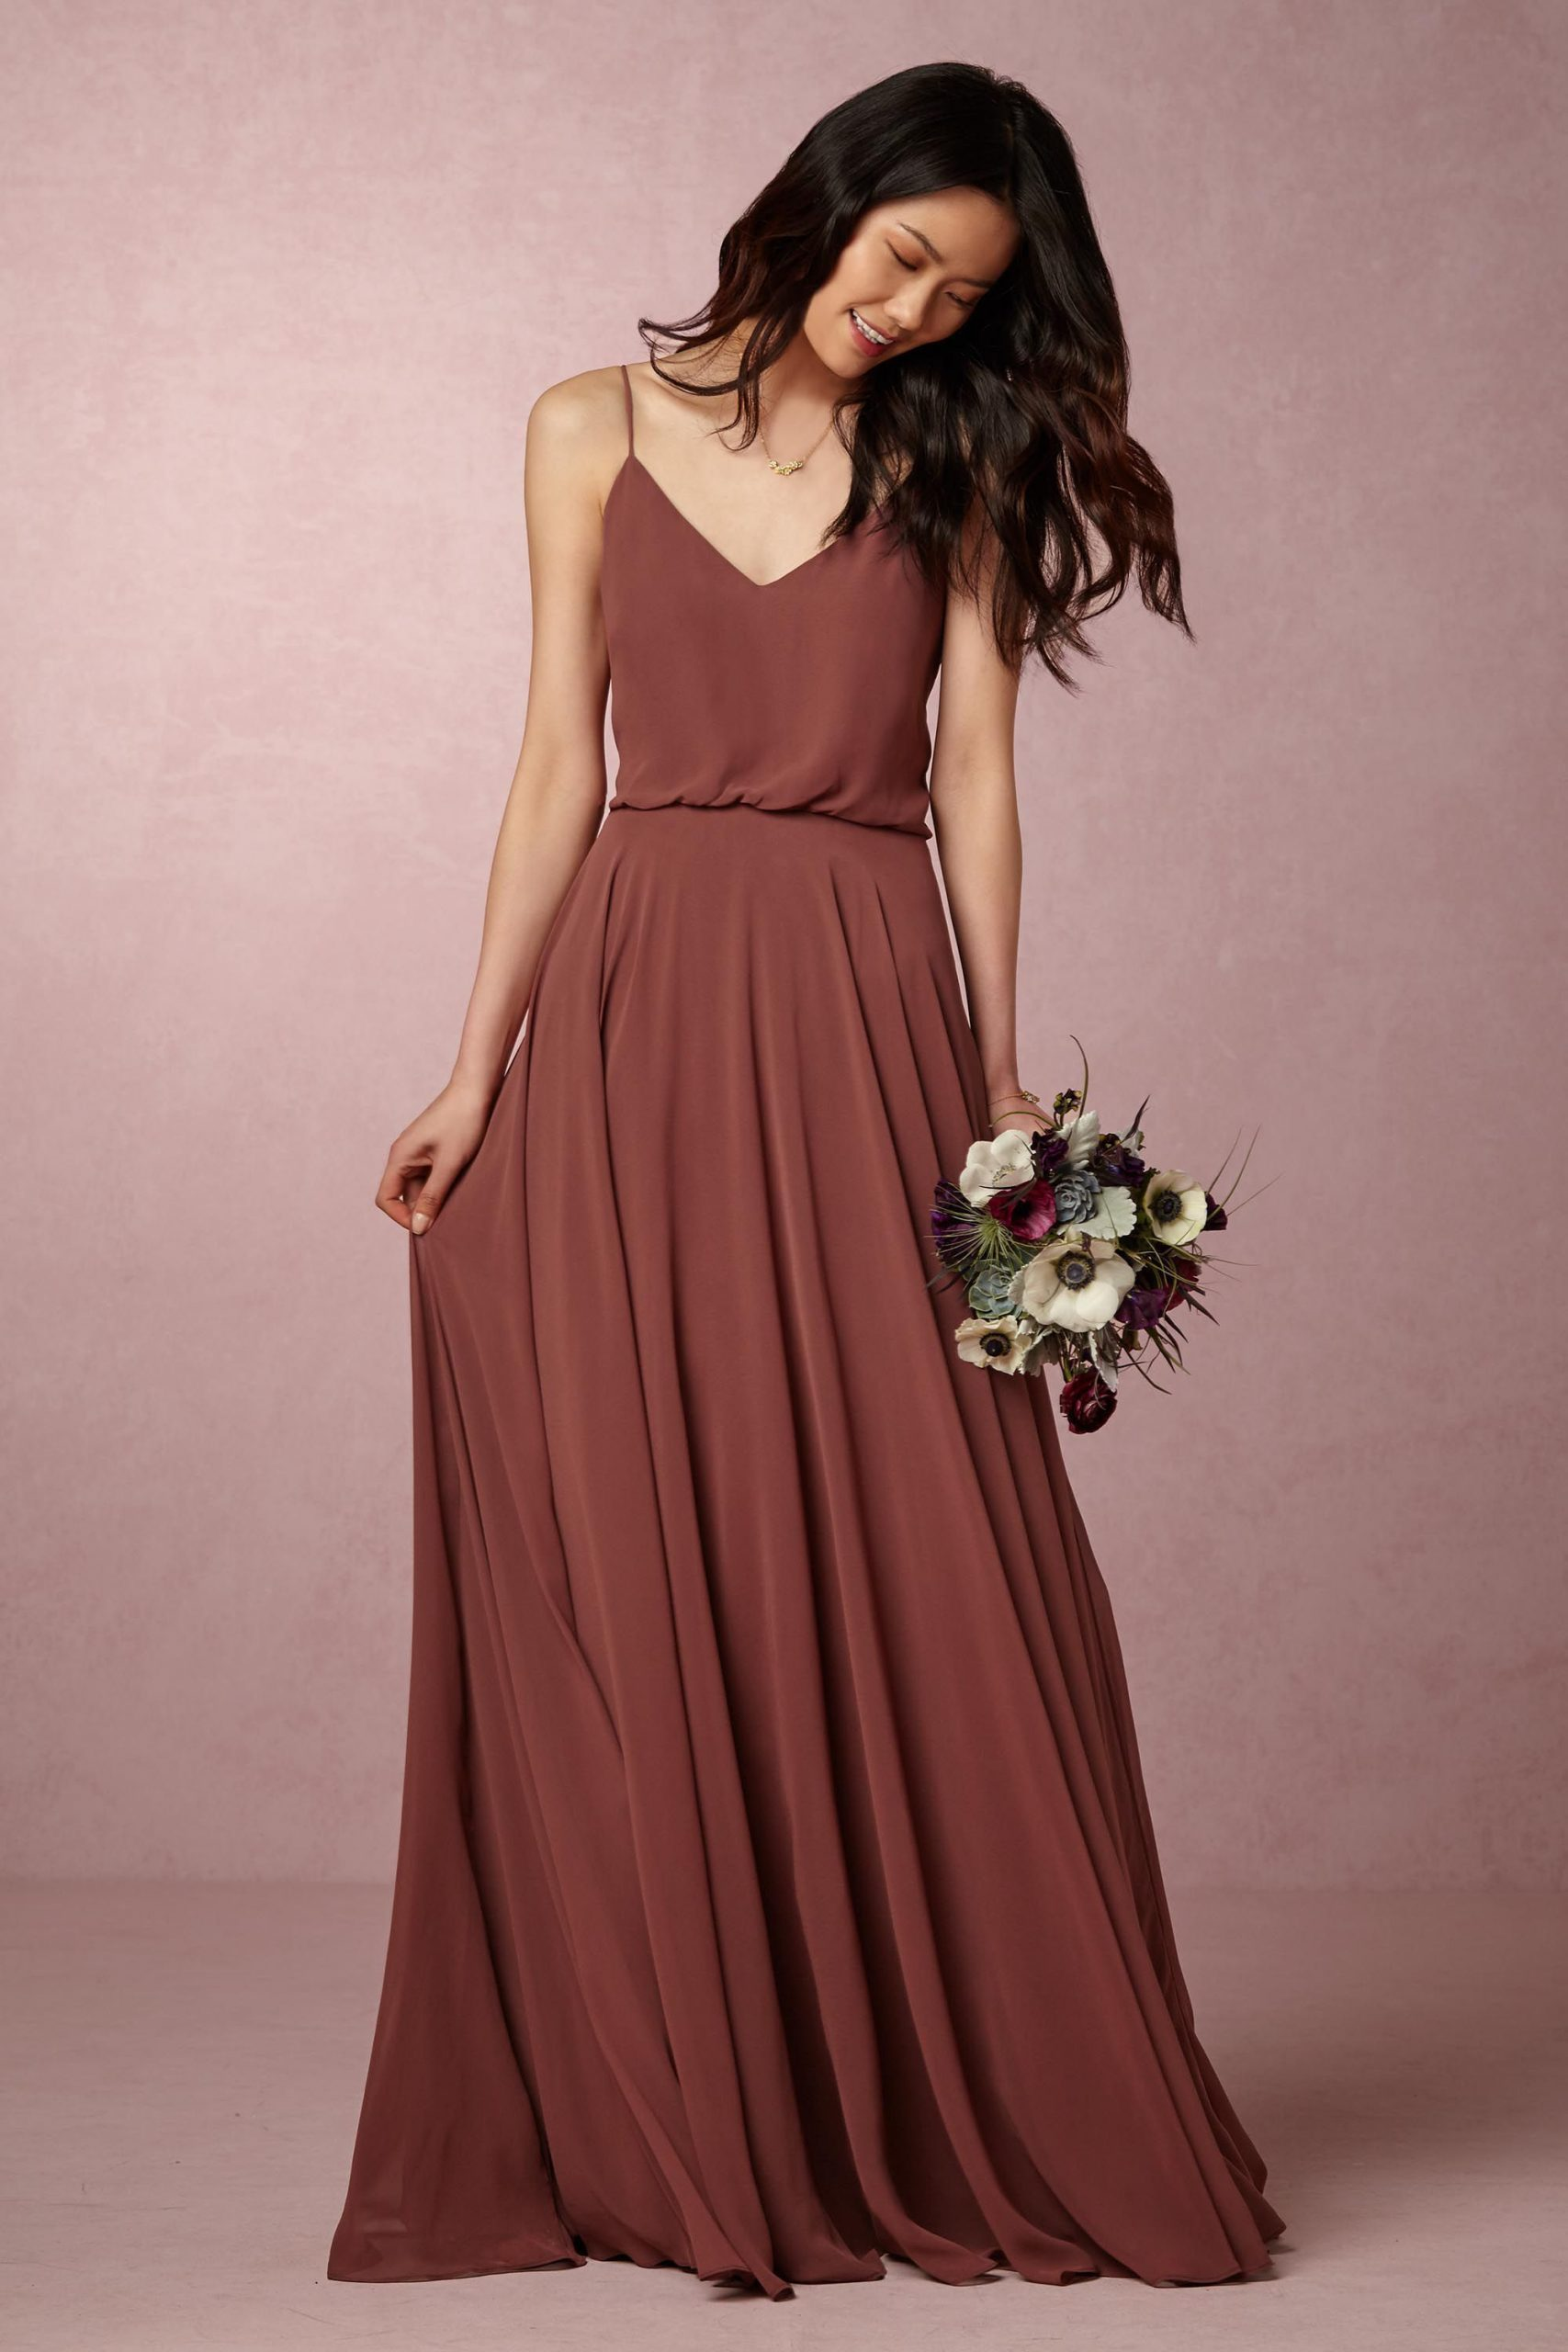 Glamorous Dresses For Wedding Ideas For A Fashionable Lo